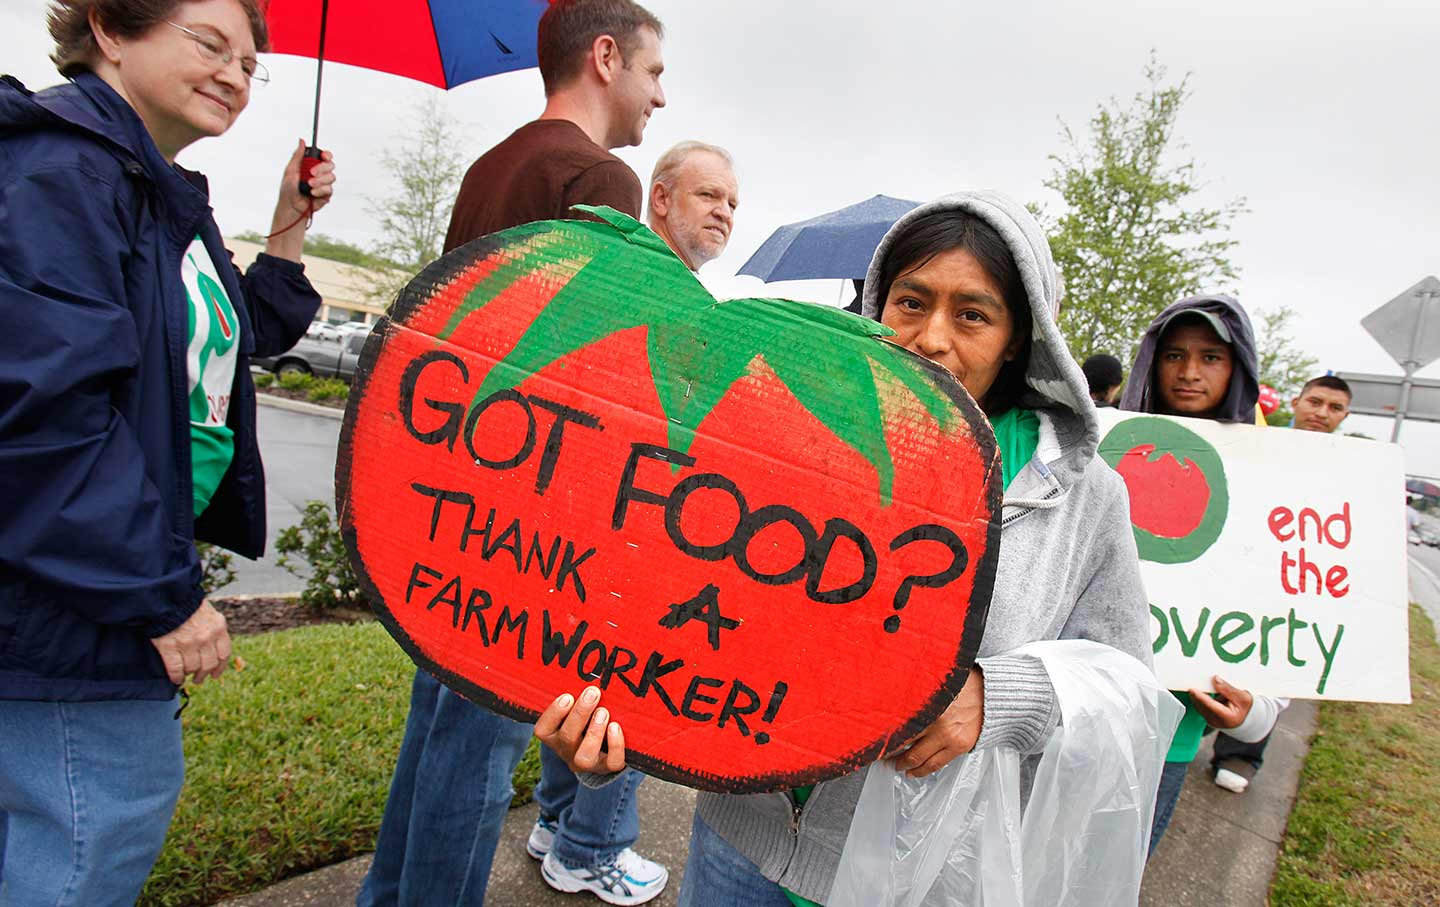 Coalition of Immokalee Workers protest